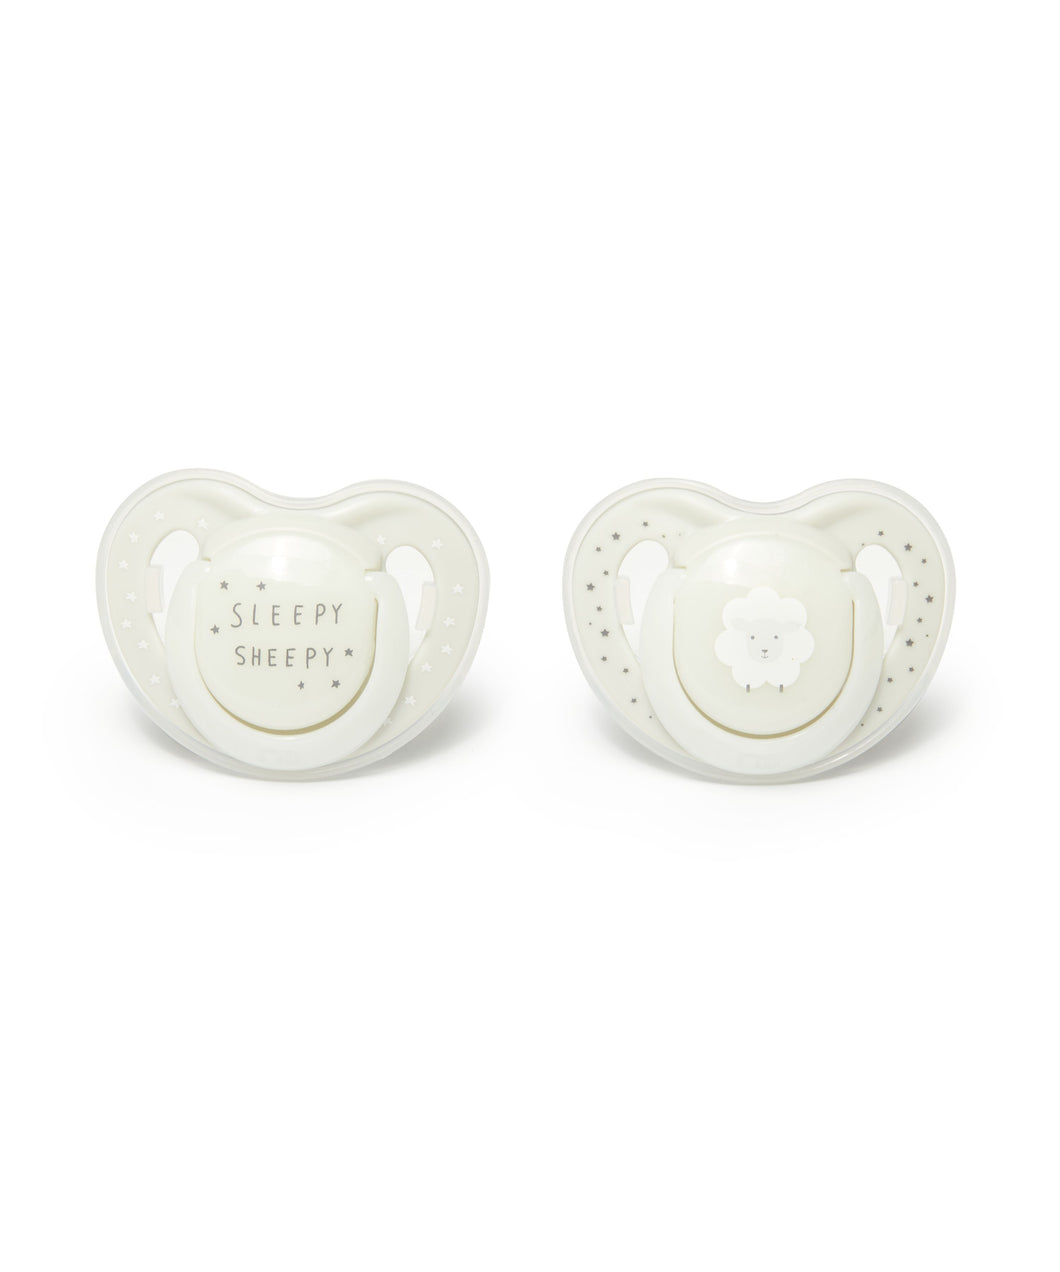 mothercare 0-6m orthodontic soothers 2 pack - sheep